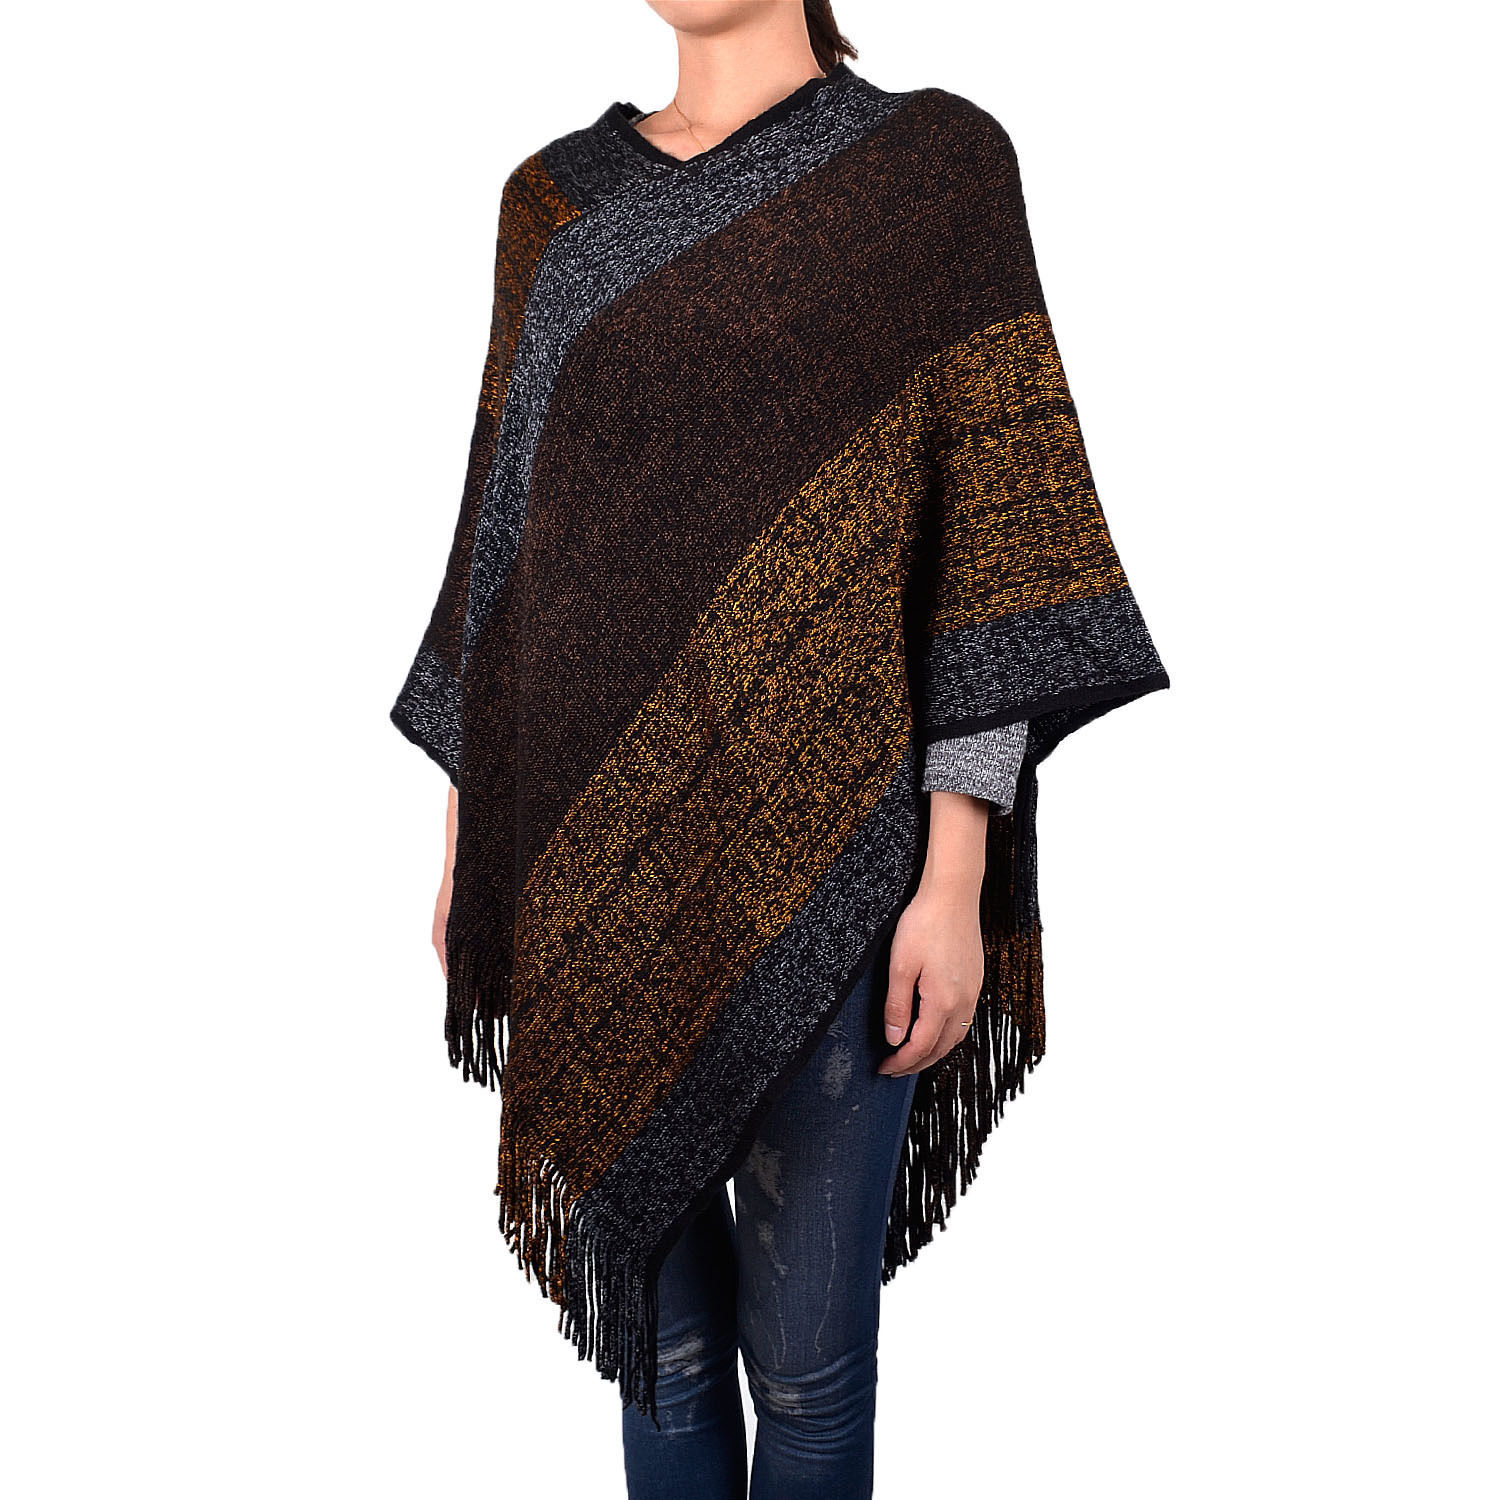 Primary image for Women's Fashion Striped Multi Color Knitted Tassel Shawl Poncho Batwing